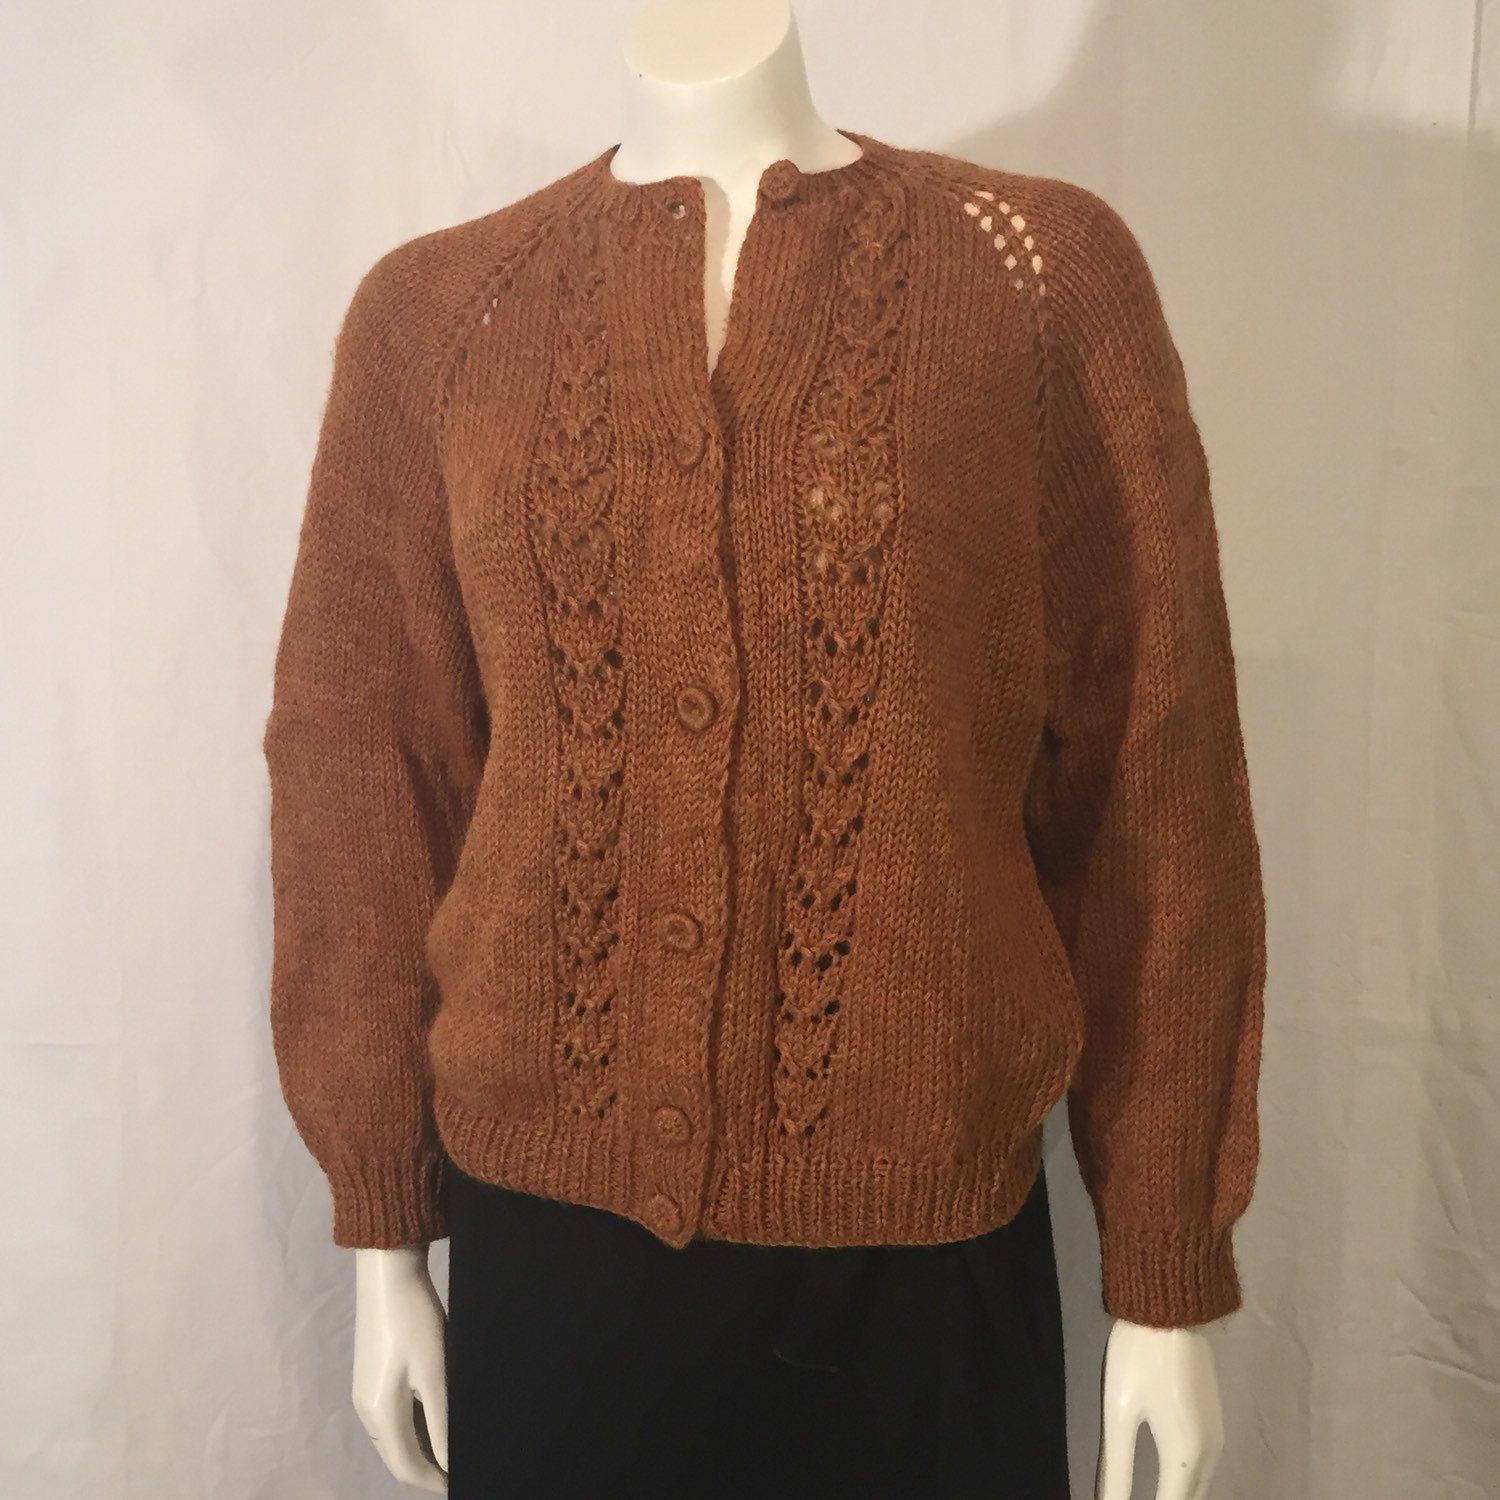 Vintage Autumn Ombre Hand knit Cardigan Sweater Brown Gold Orange ...